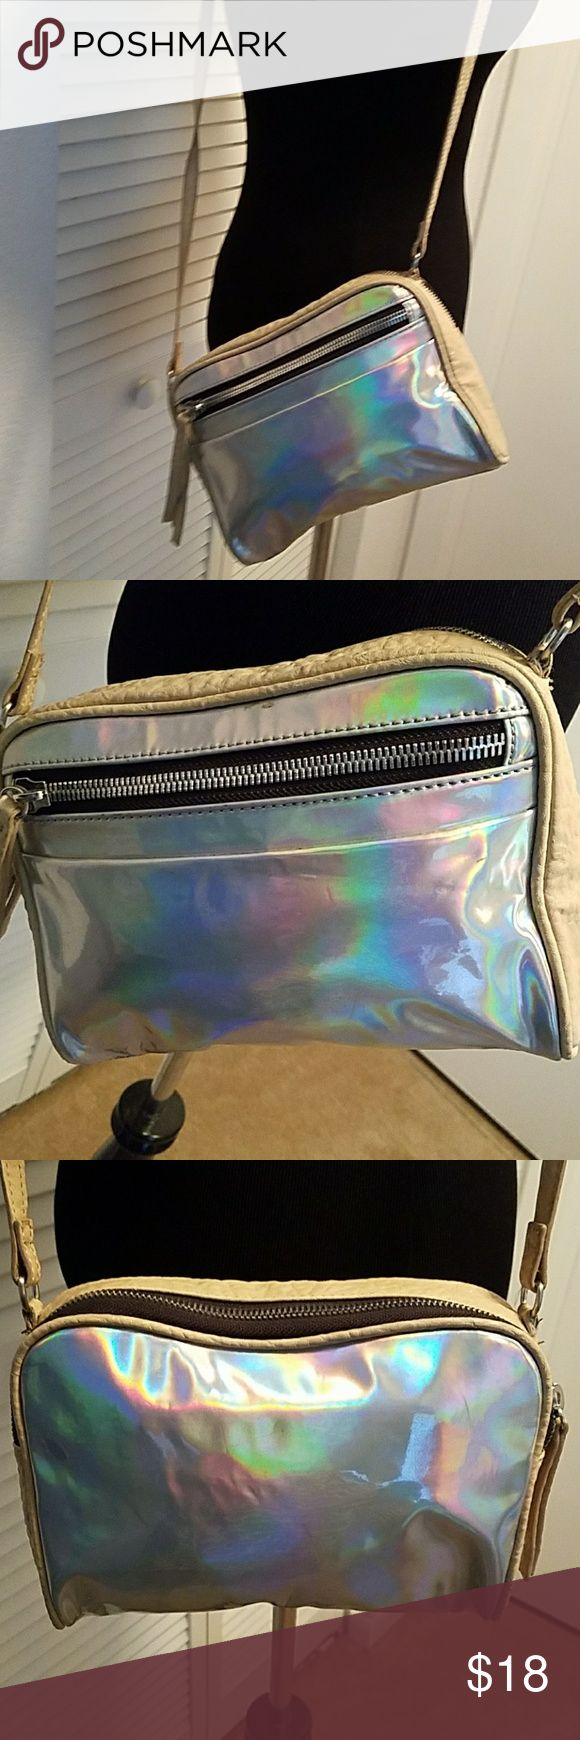 KELSI DAGGER CROSSBODY HANDBAG Pre owned in good condition but does show wear. No rips but lightly soiled. Strap is adjustable. Kelsi Dagger Bags